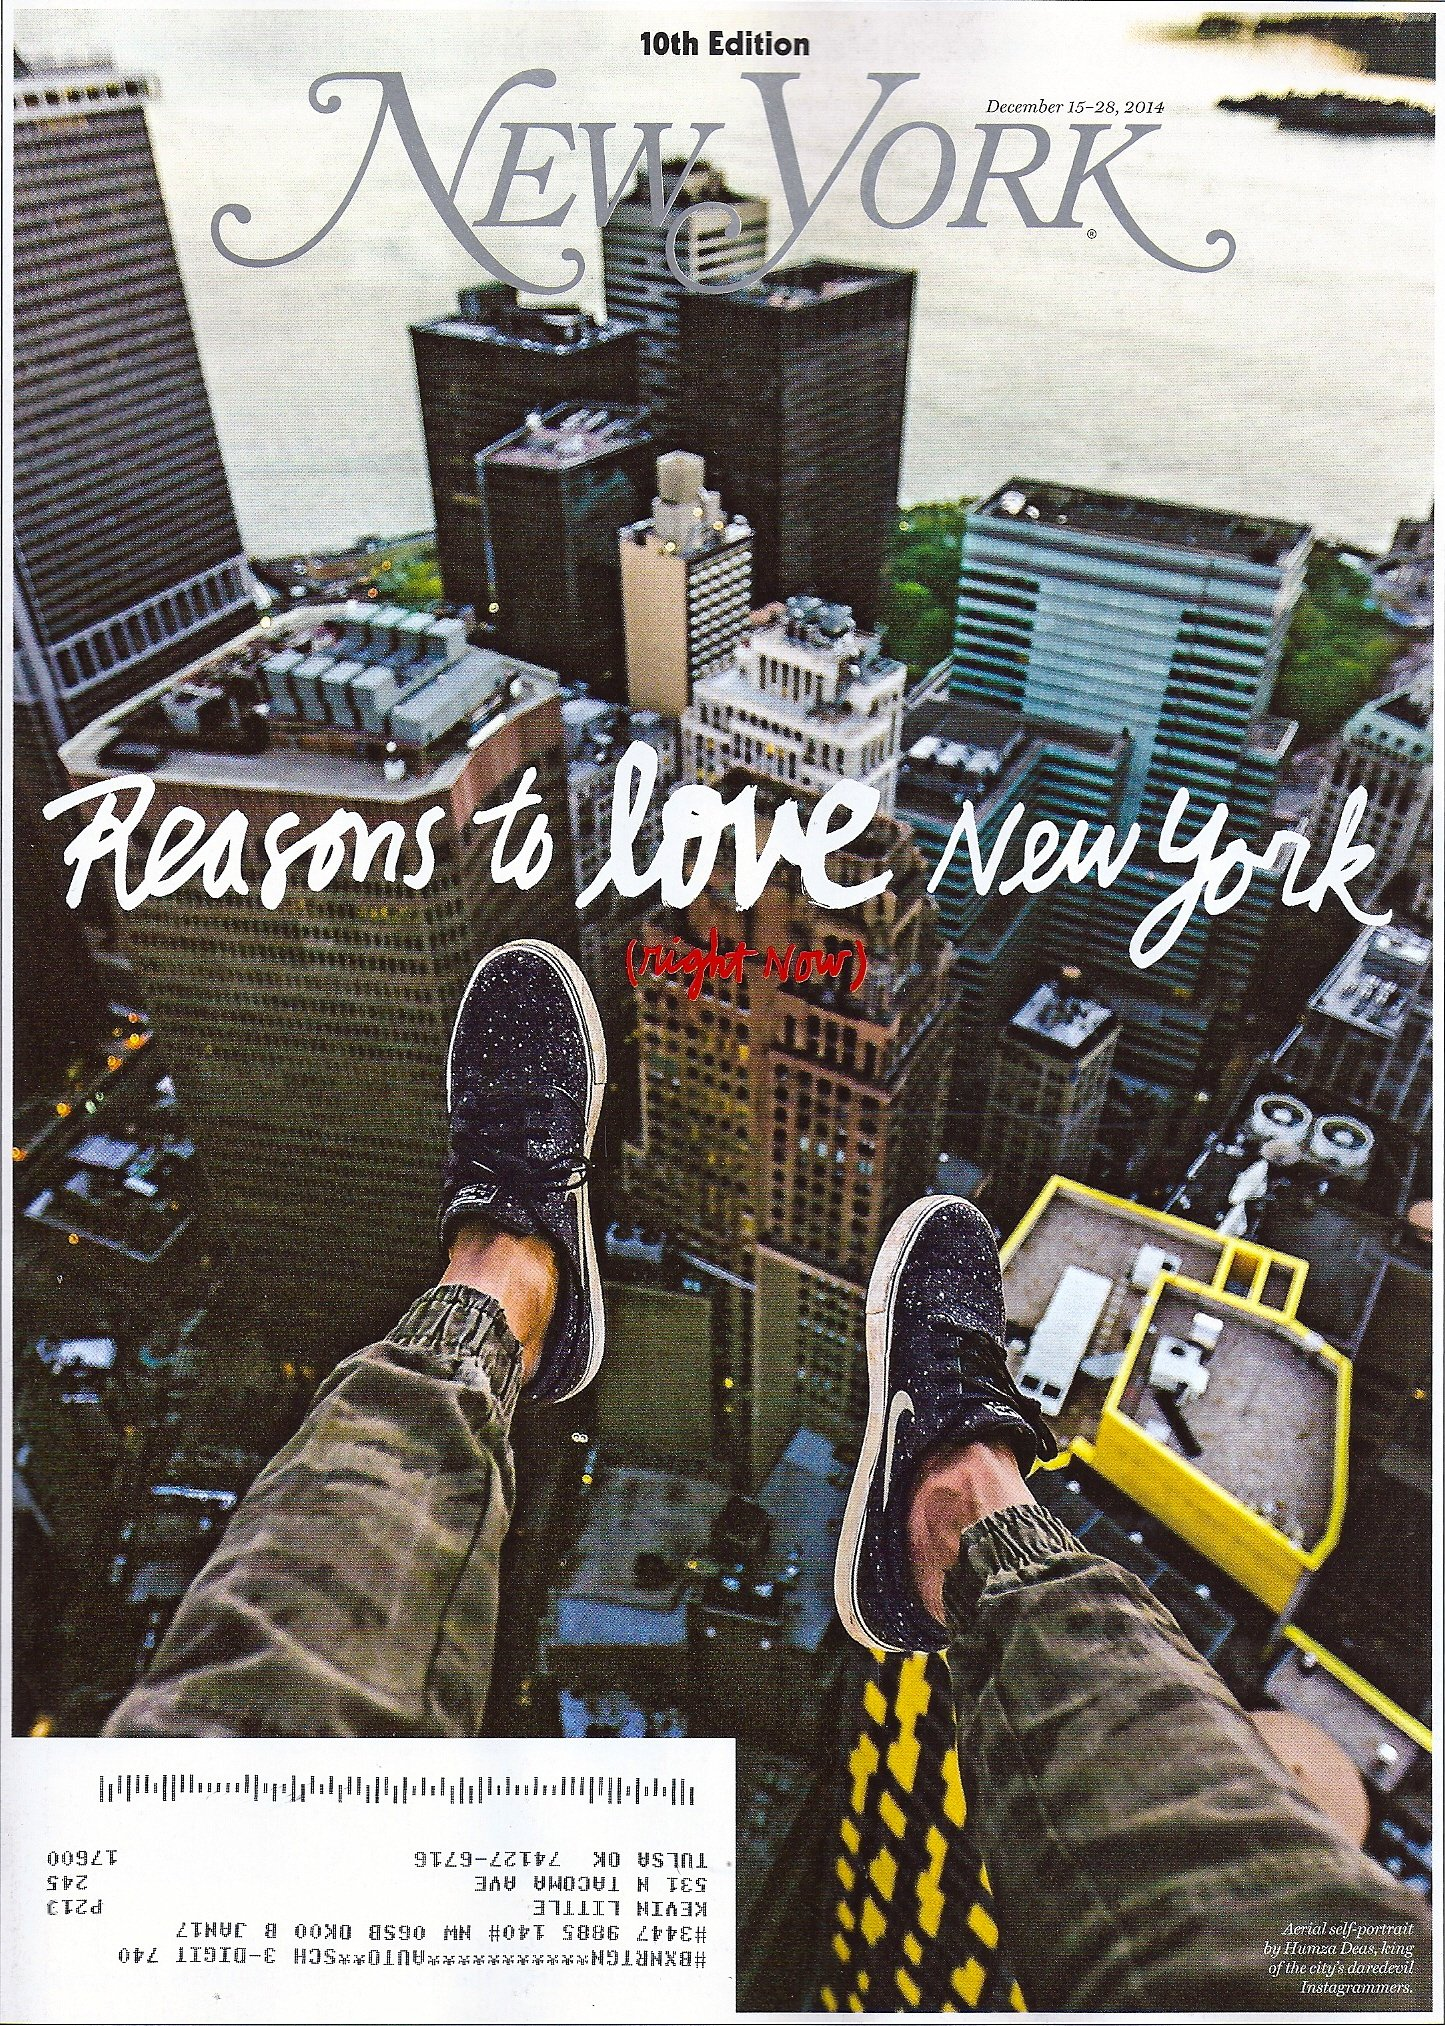 Reasons to Love New York (Right Now) * 10th Edition * December 15-28, 2014 New York Magazine [225 Pages!] pdf